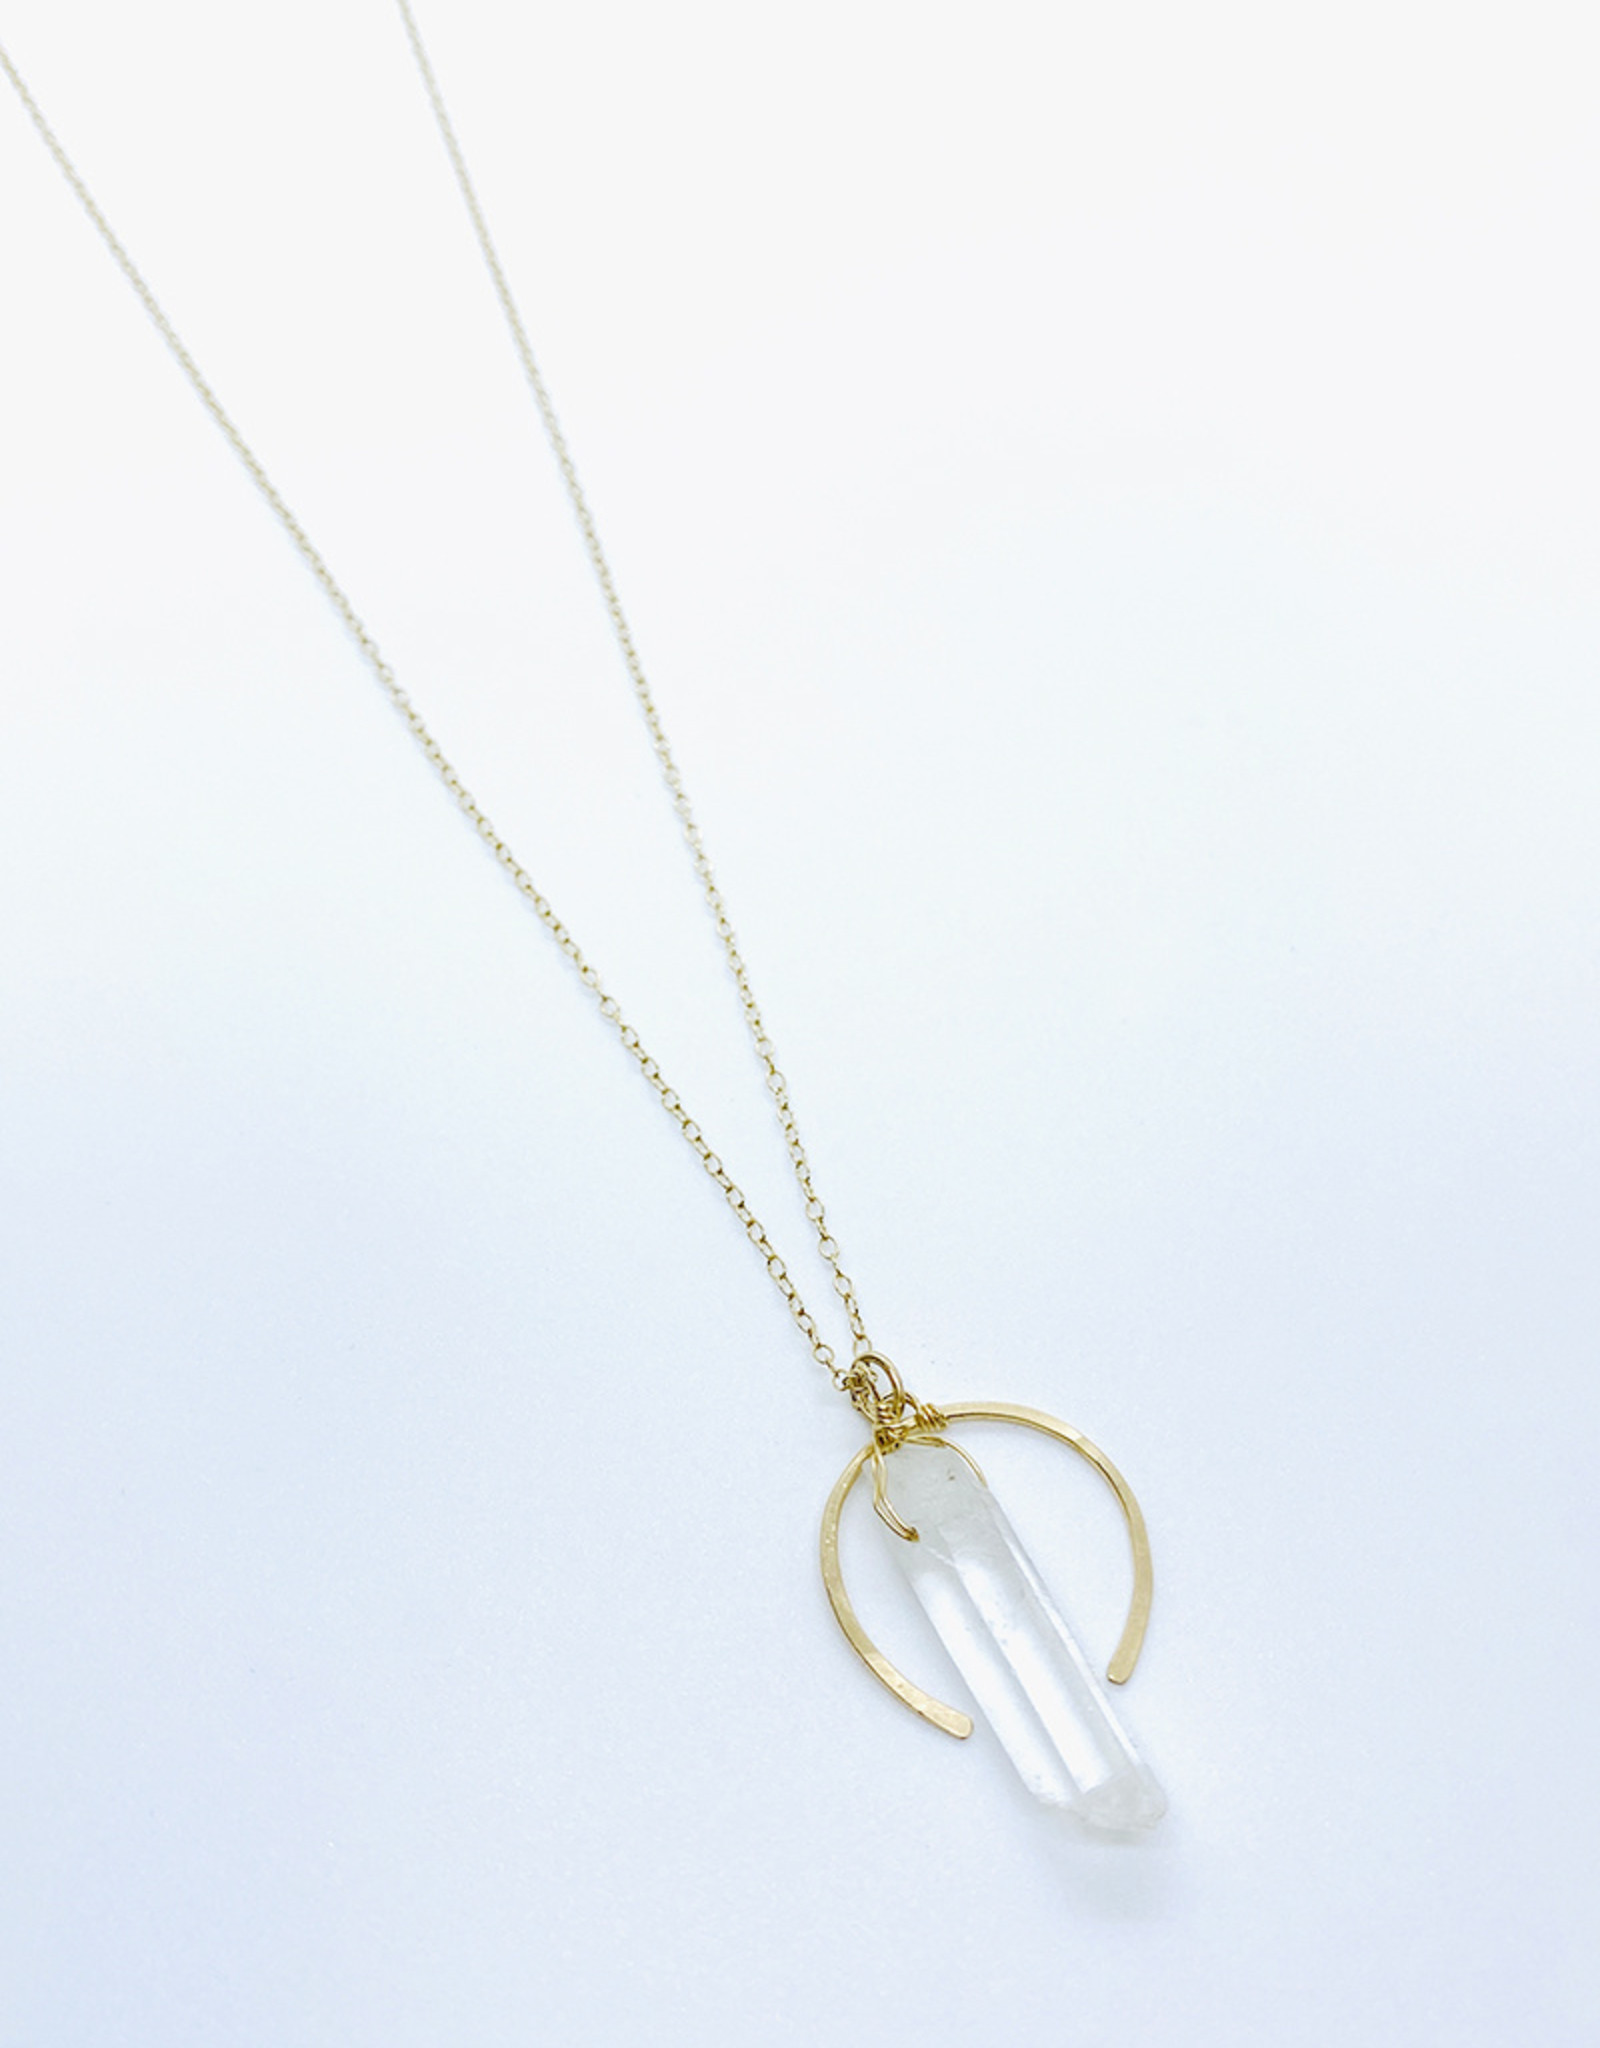 Earth Sign Design Crystal Quartz + Arch Necklace by Earth Sign Design